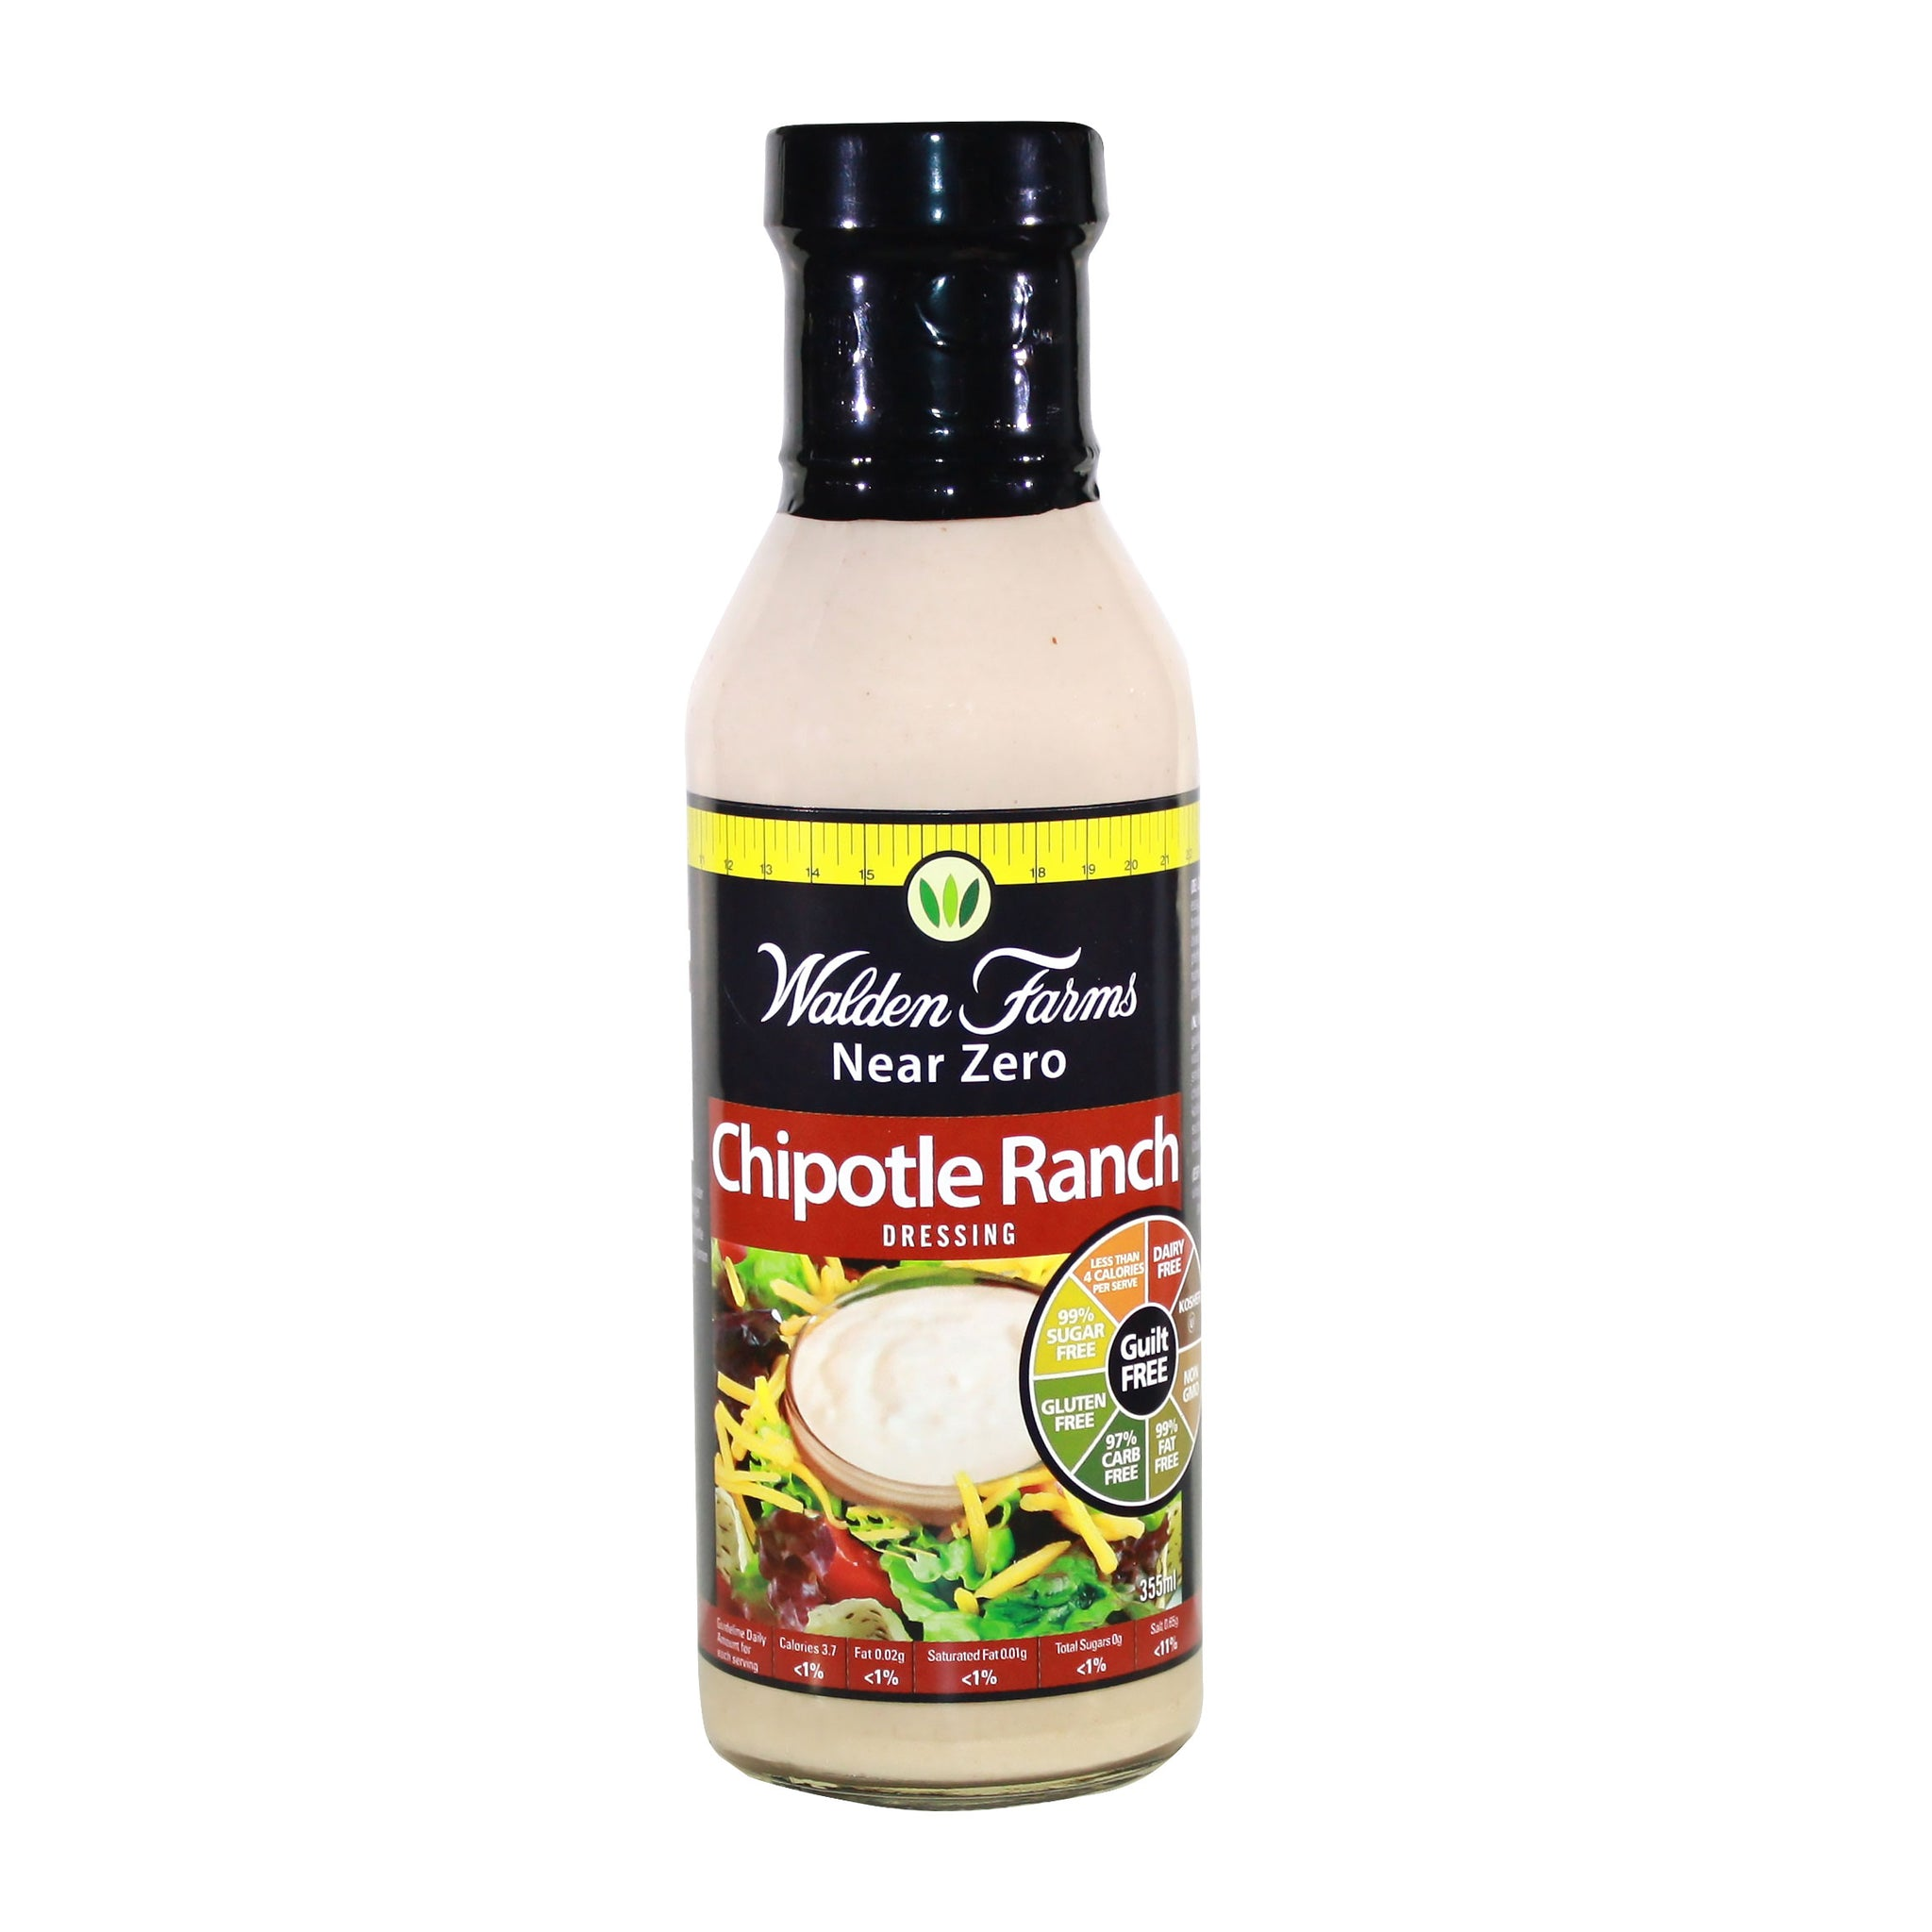 Gluten Free Chipotle Ranch Dressing with Near Zero Fats and Calories